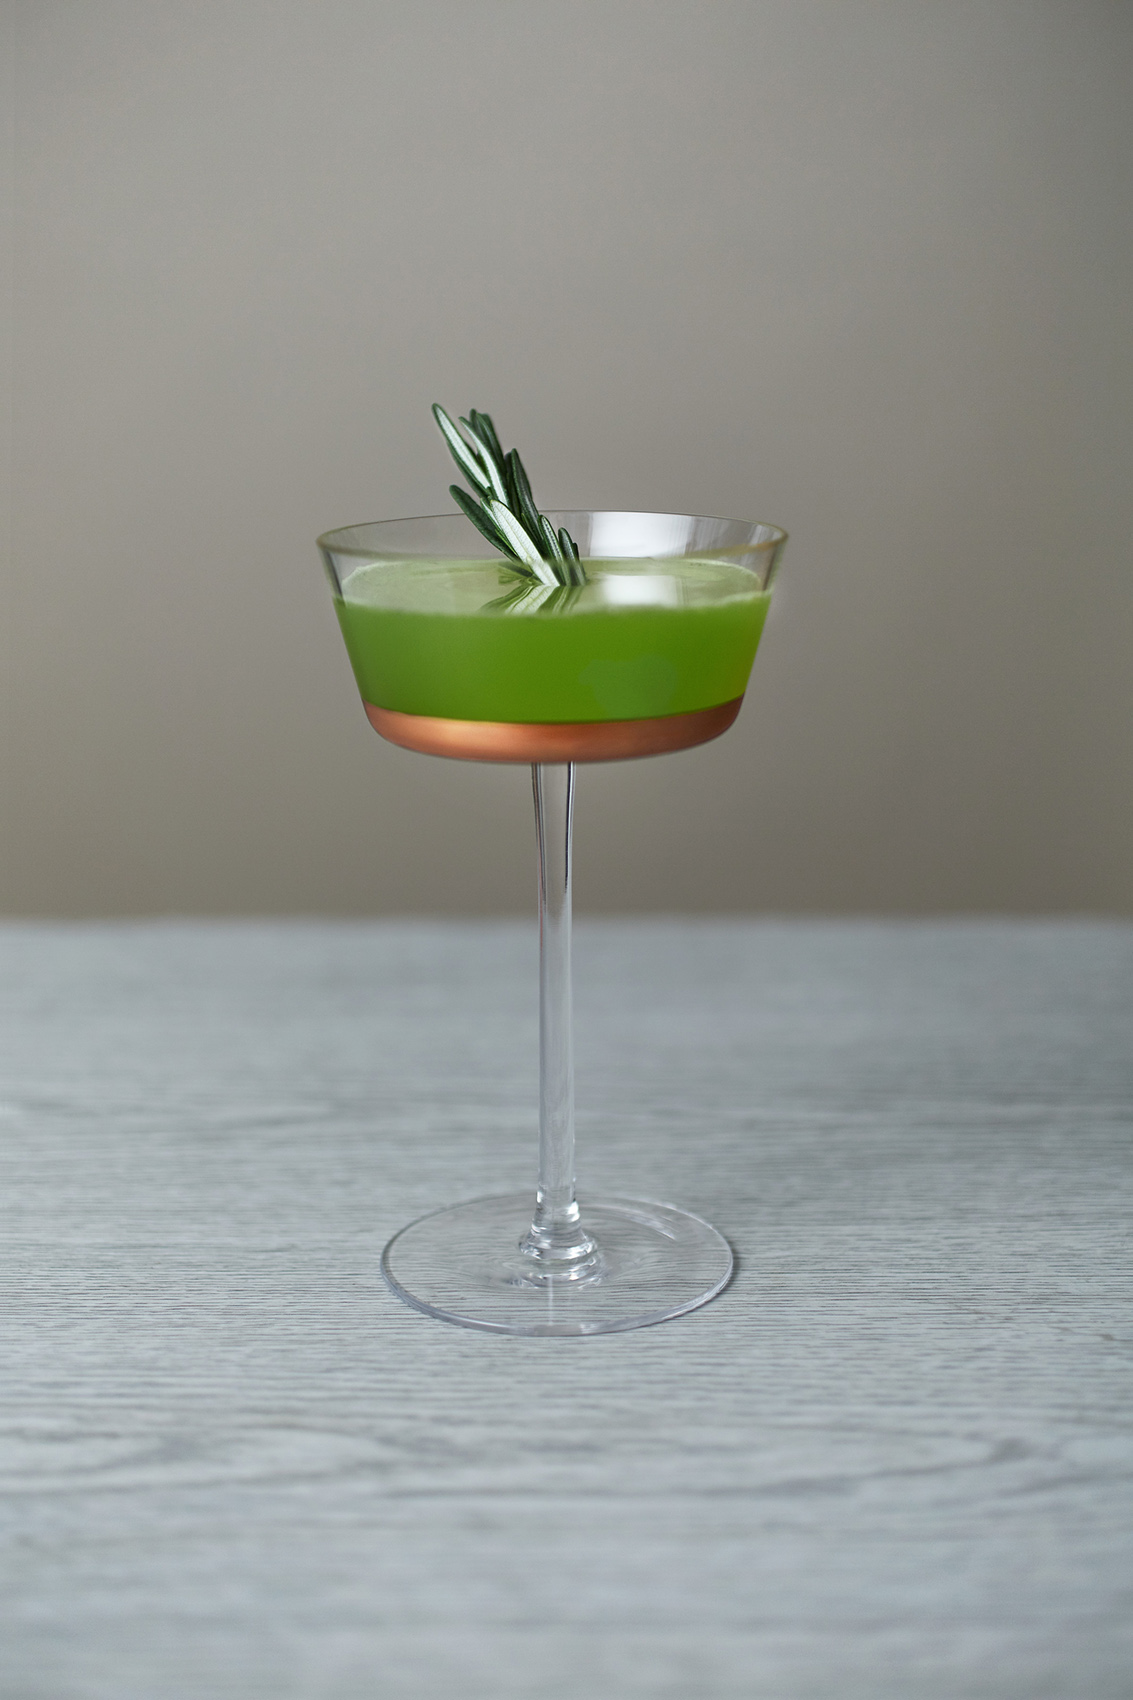 21_12_15_Cocktails_Seedlip4779_W3